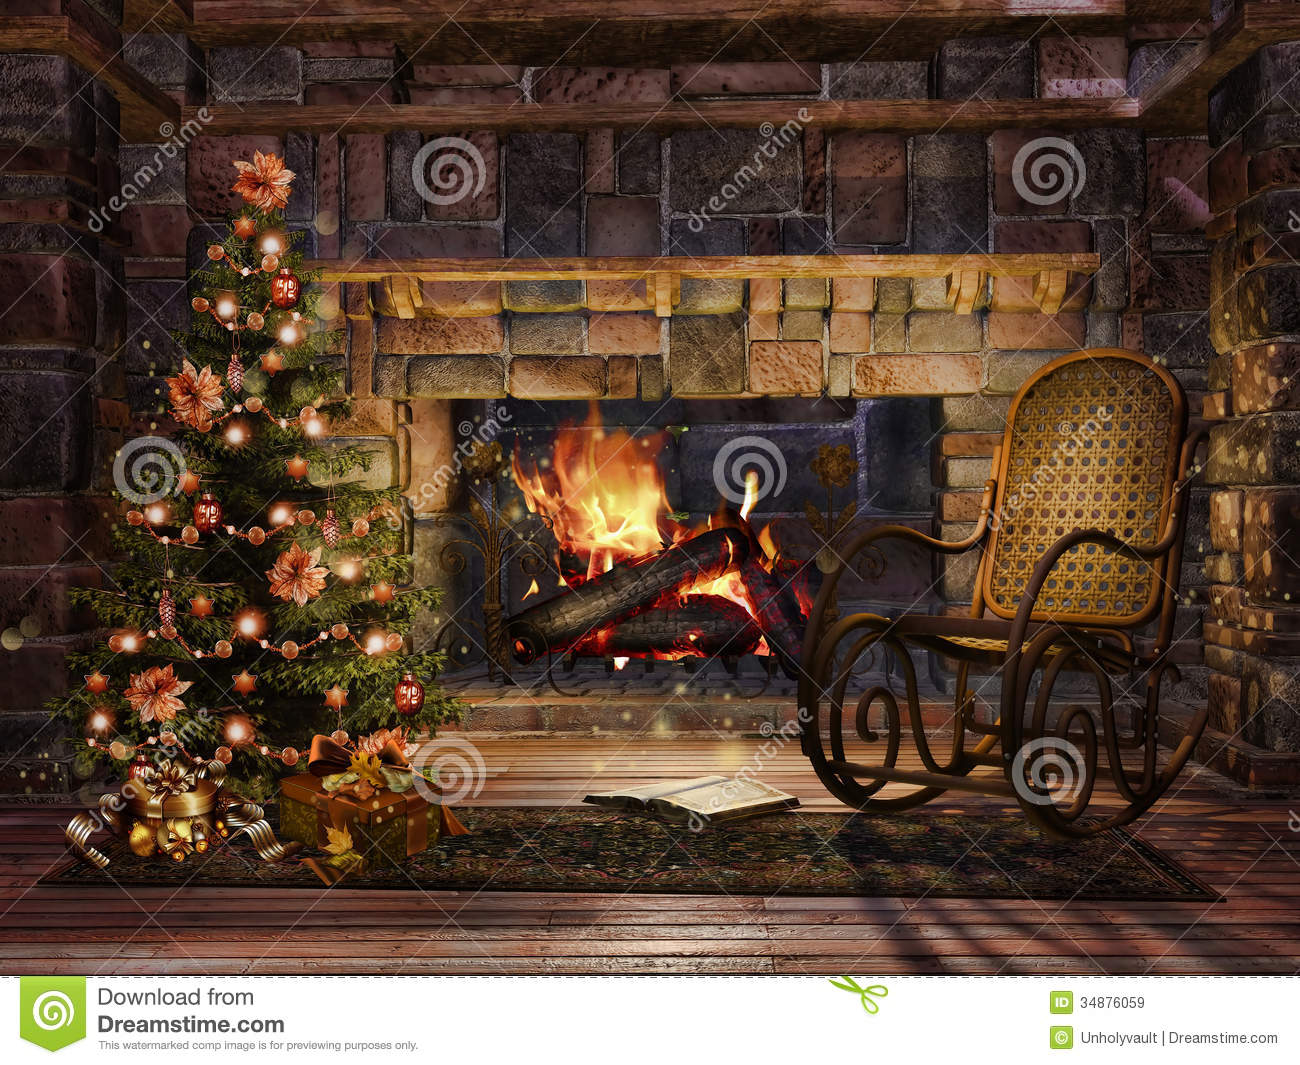 Cottage Room With A Christmas Tree Royalty Free Stock Images  Image 34876059